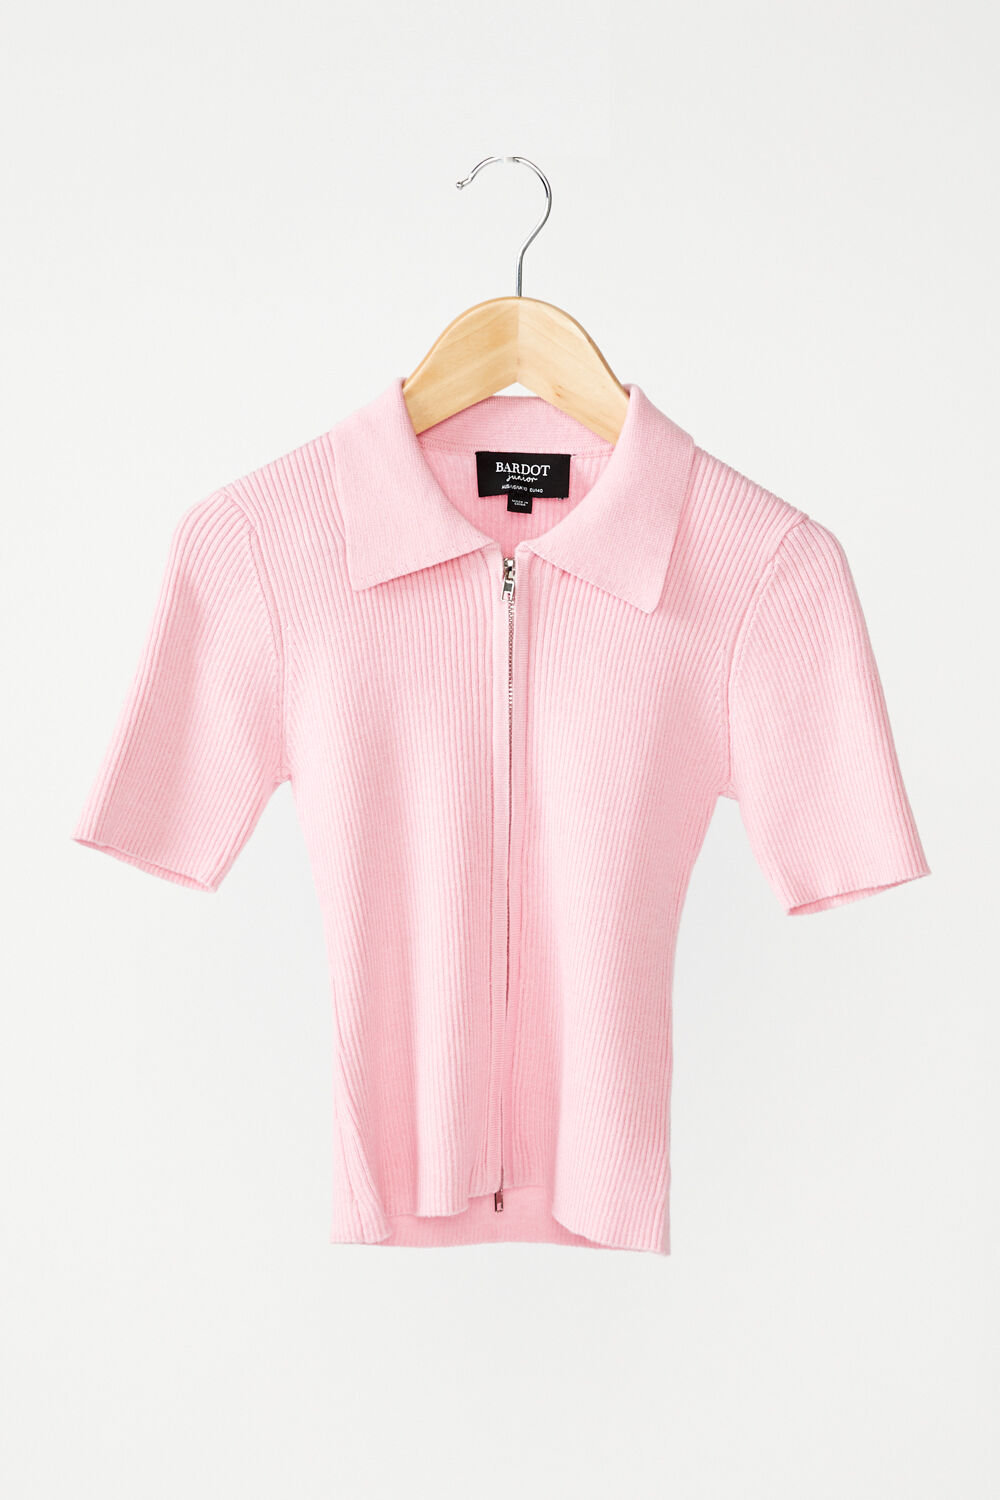 JUNIOR GIRL KNIT COLLAR TEE in colour PINK LADY